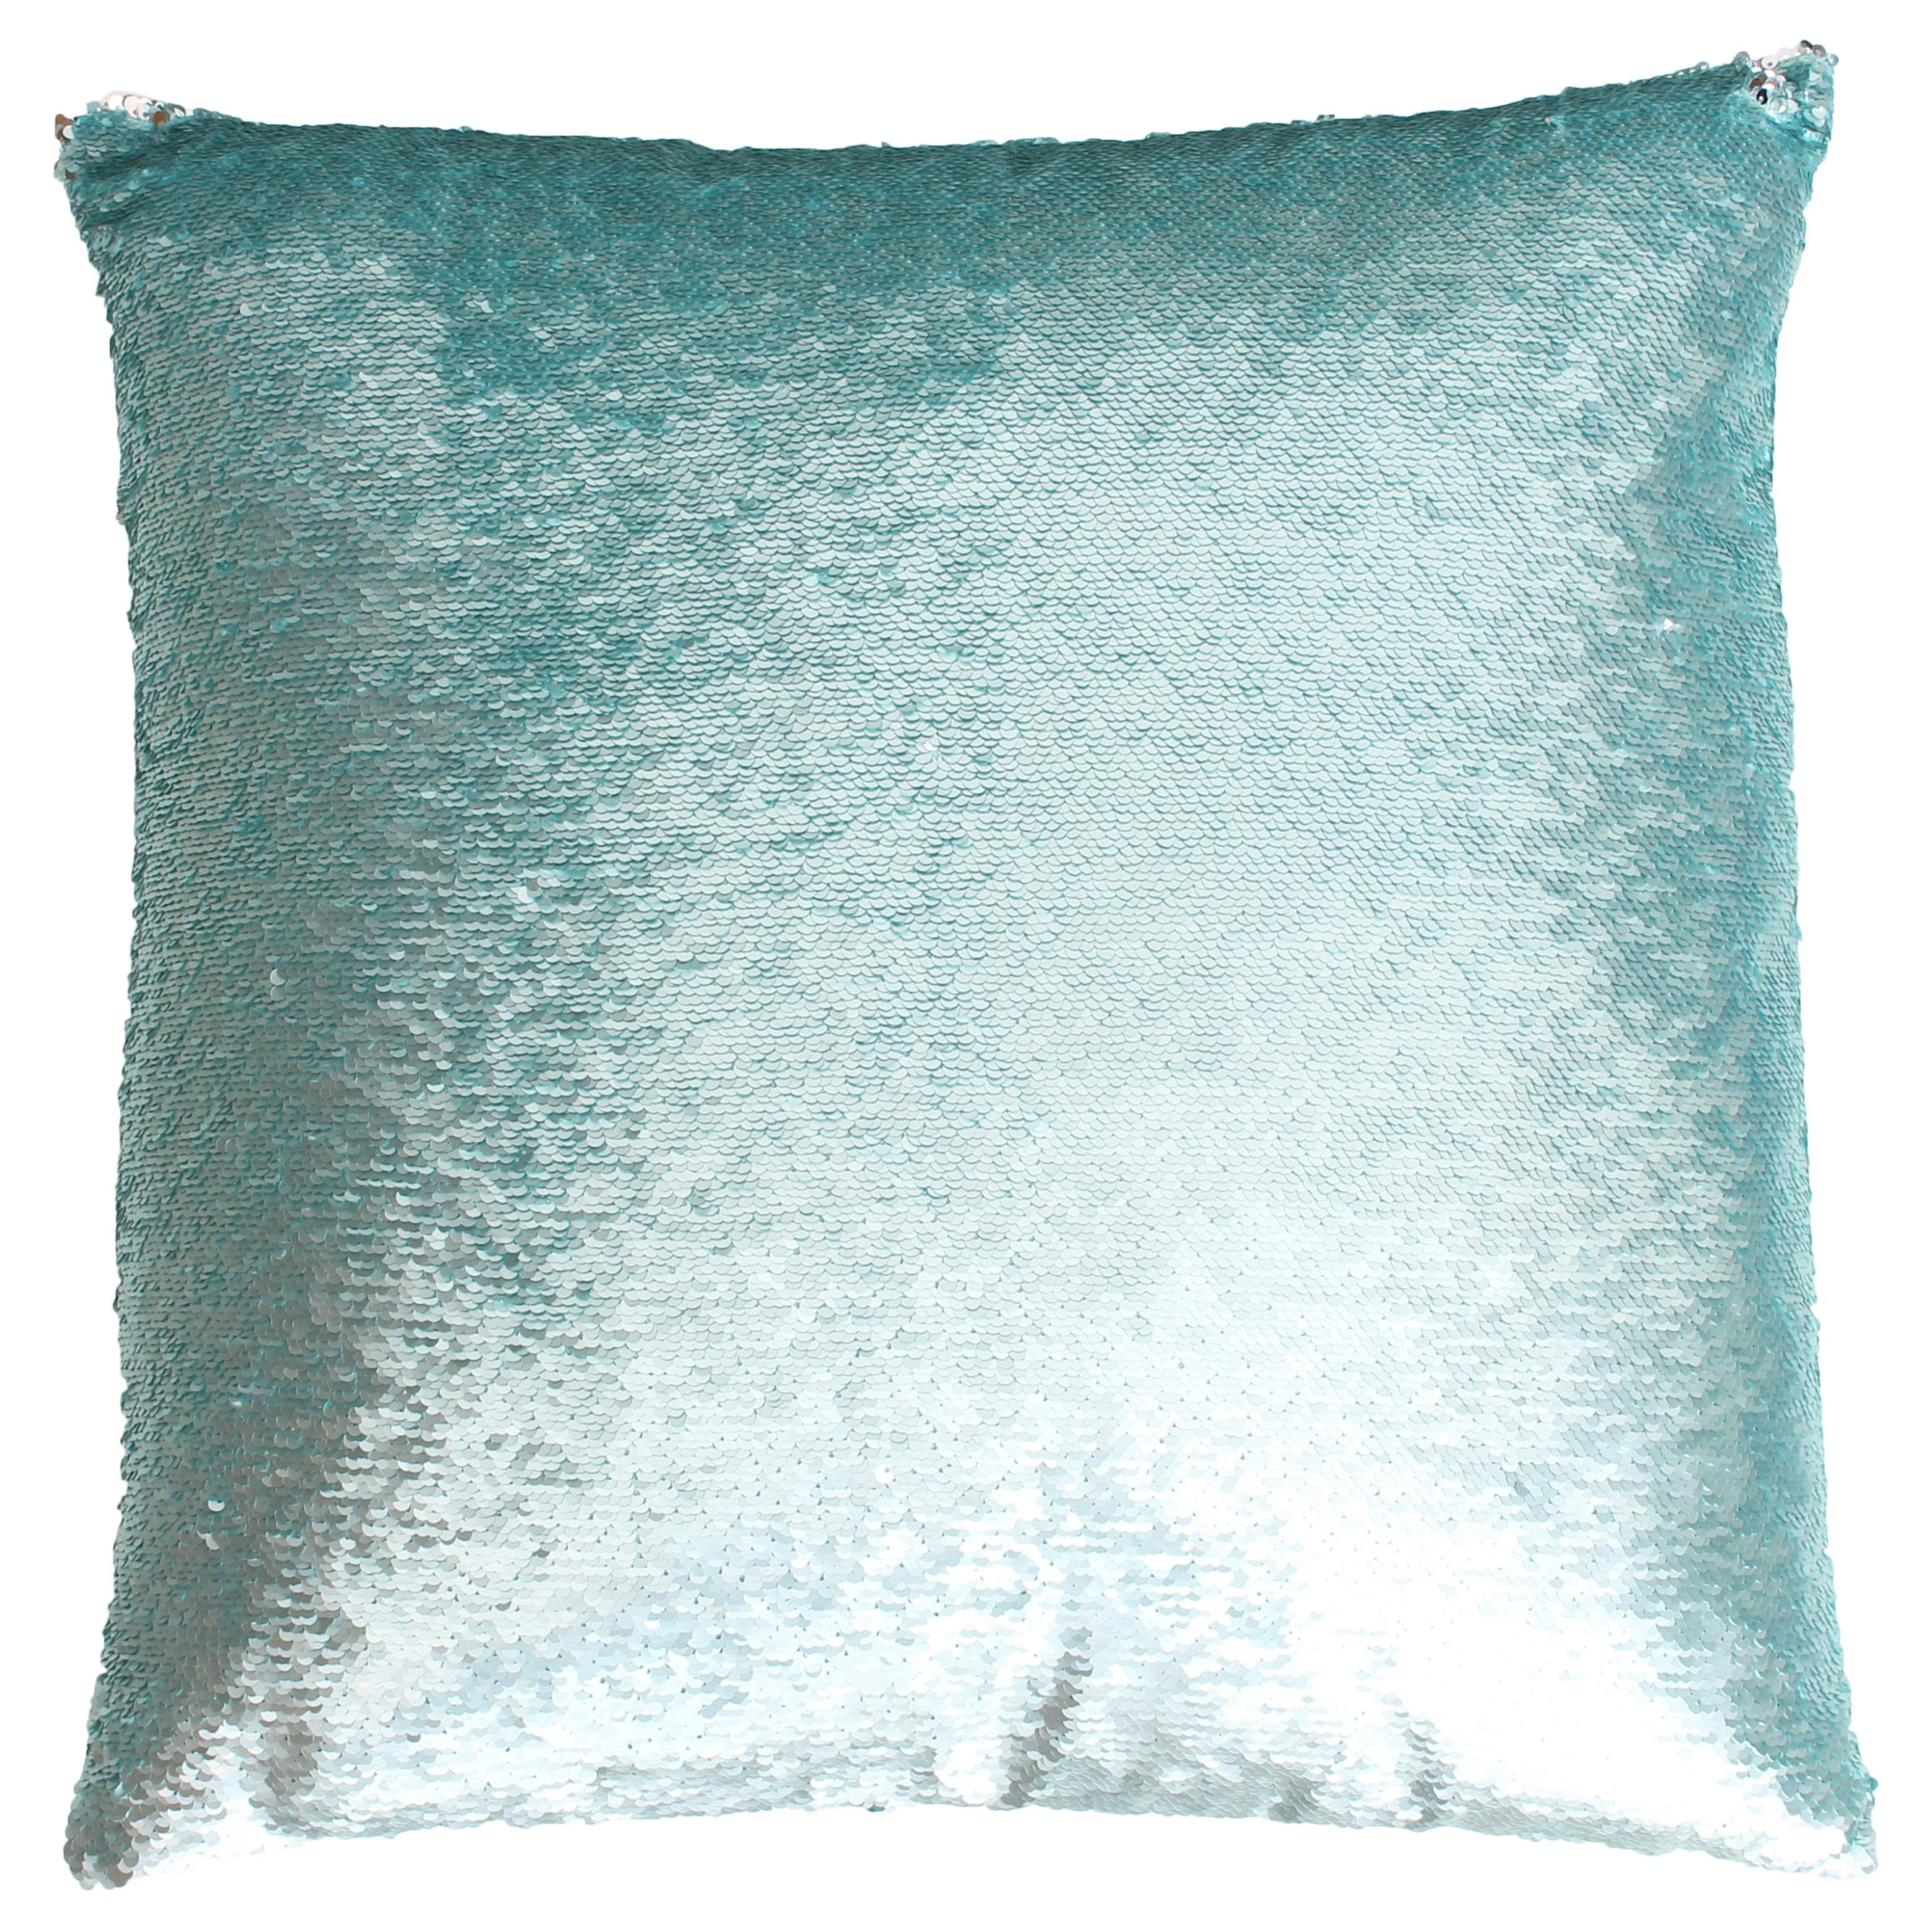 Top Melody Mermaid Reversible Sequin 20-inch Feather-filled Pillow  SS08